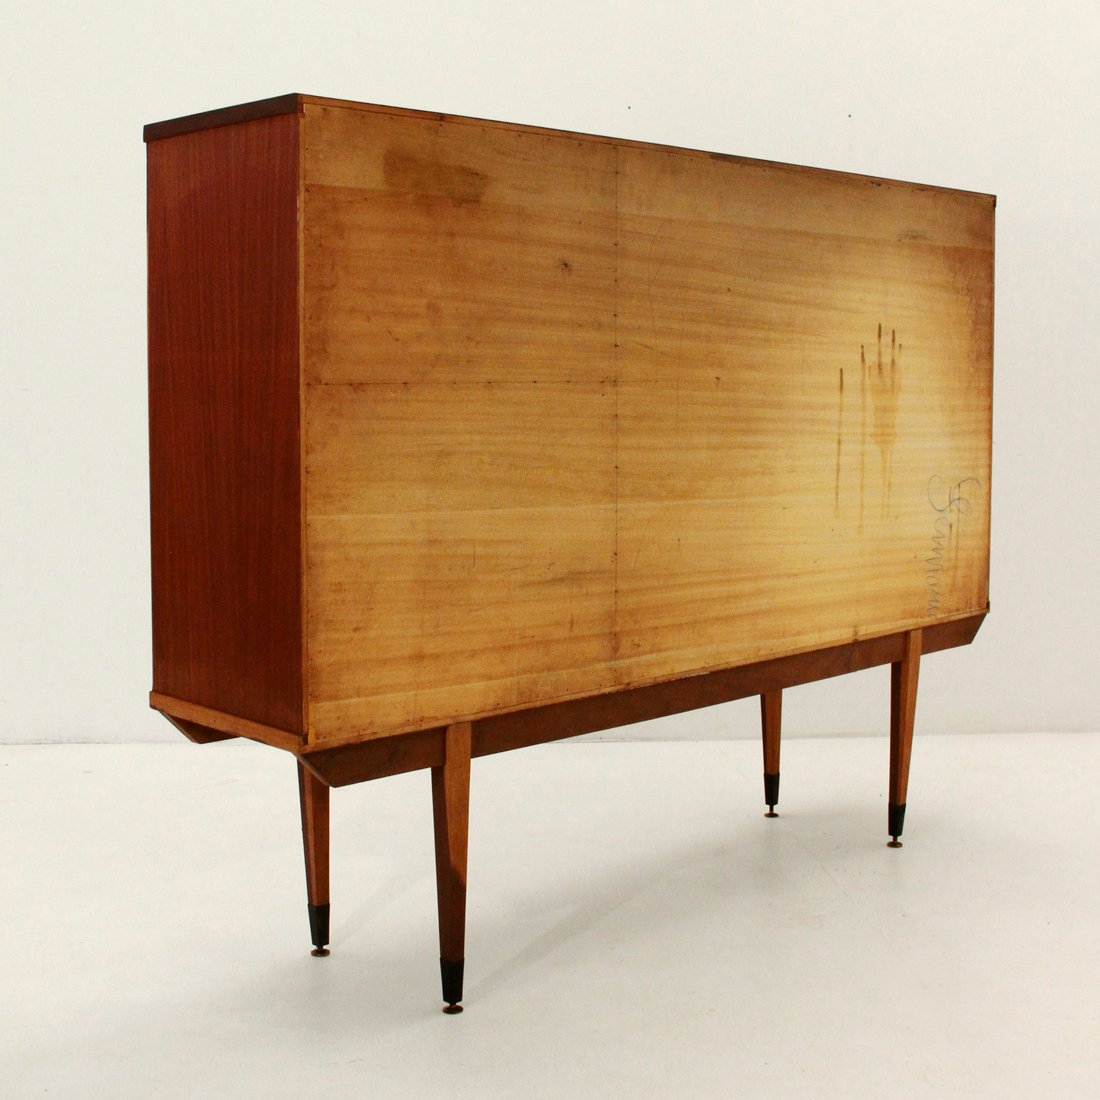 Mid Century Credenza For Sale: Mid-Century Italian Credenza, 1950s For Sale At Pamono